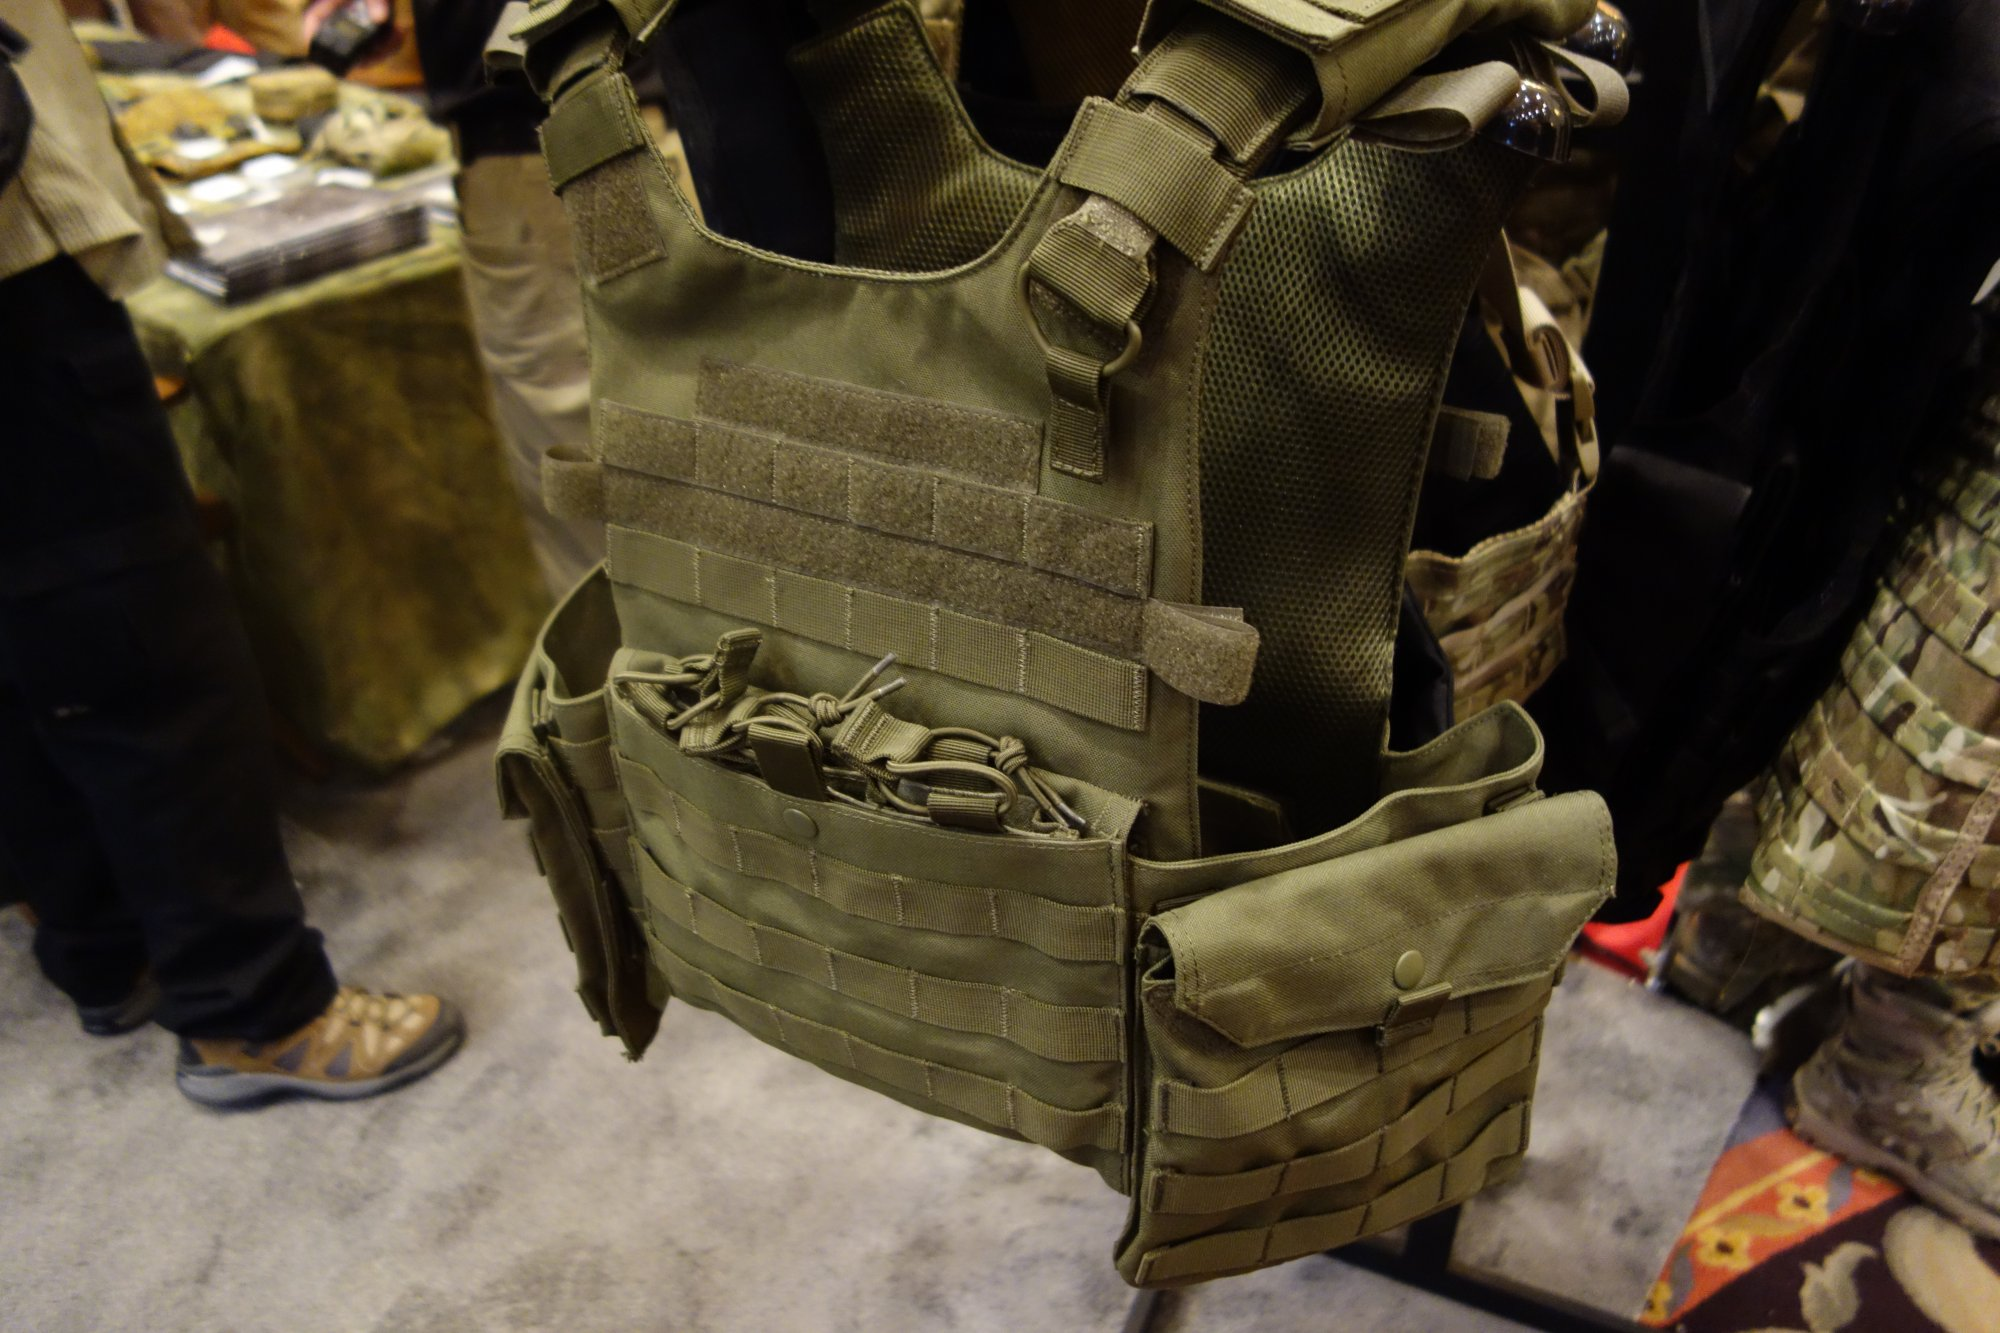 Condor Gunner Lightweight Plate Carrier Quick Release Tactical Armor Plate Carrier Body Armor Tactical Vest Henry Ko Condor Outdoor Products SHOT Show 2014 David Crane DefenseReview.com DR 2 Condor Gunner Lightweight Plate Carrier: Minimalist Quick Release Tactical Armor Plate Carrier/Tactical Vest (Body Armor) for Tactical Operations